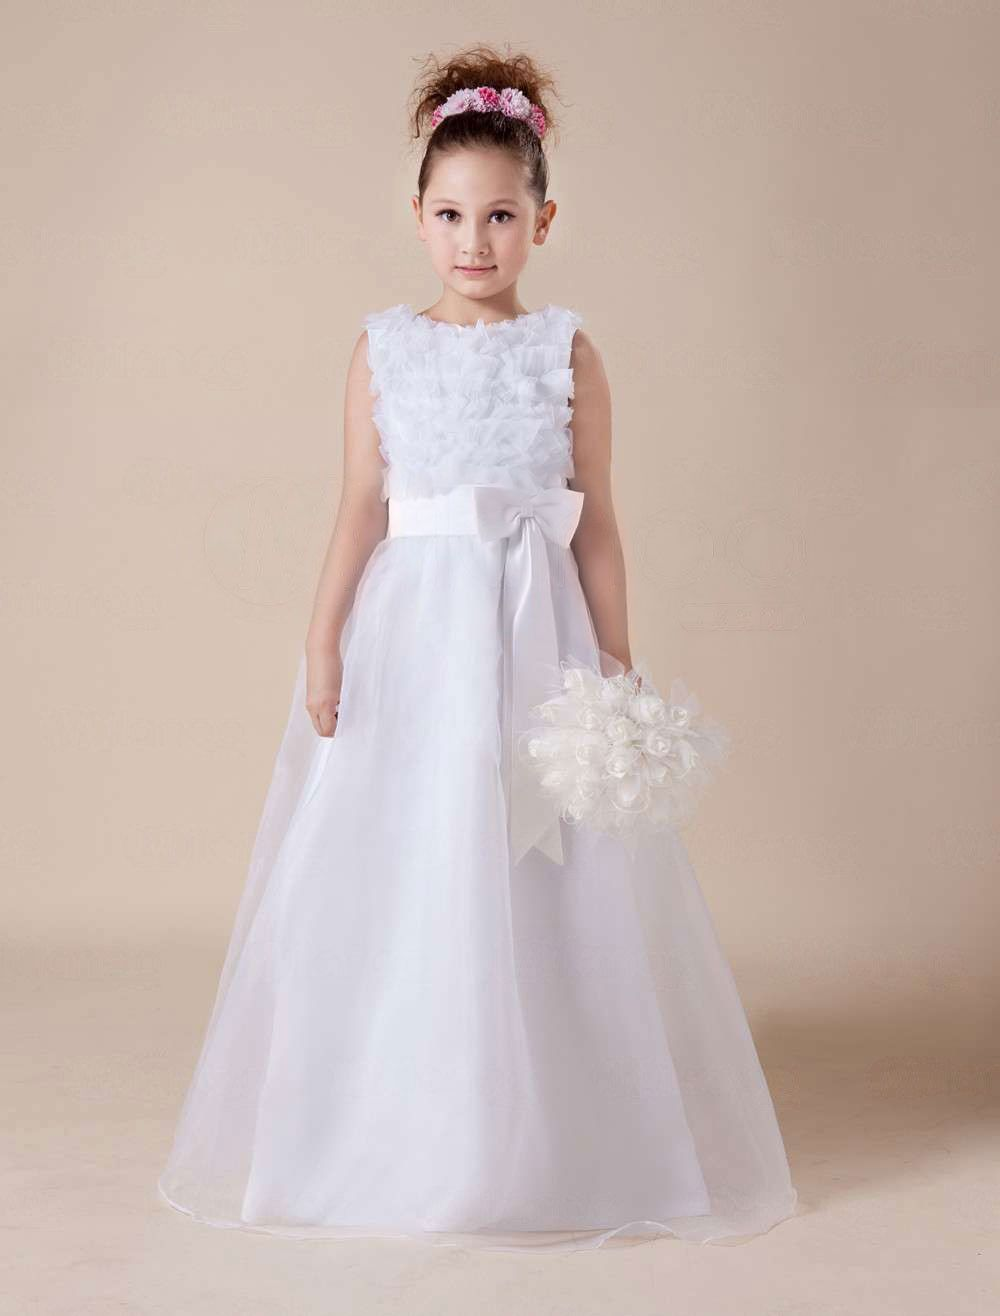 Cute white soft tulle flower girl dress party dresses party cute white soft tulle flower girl dress party dresses mightylinksfo